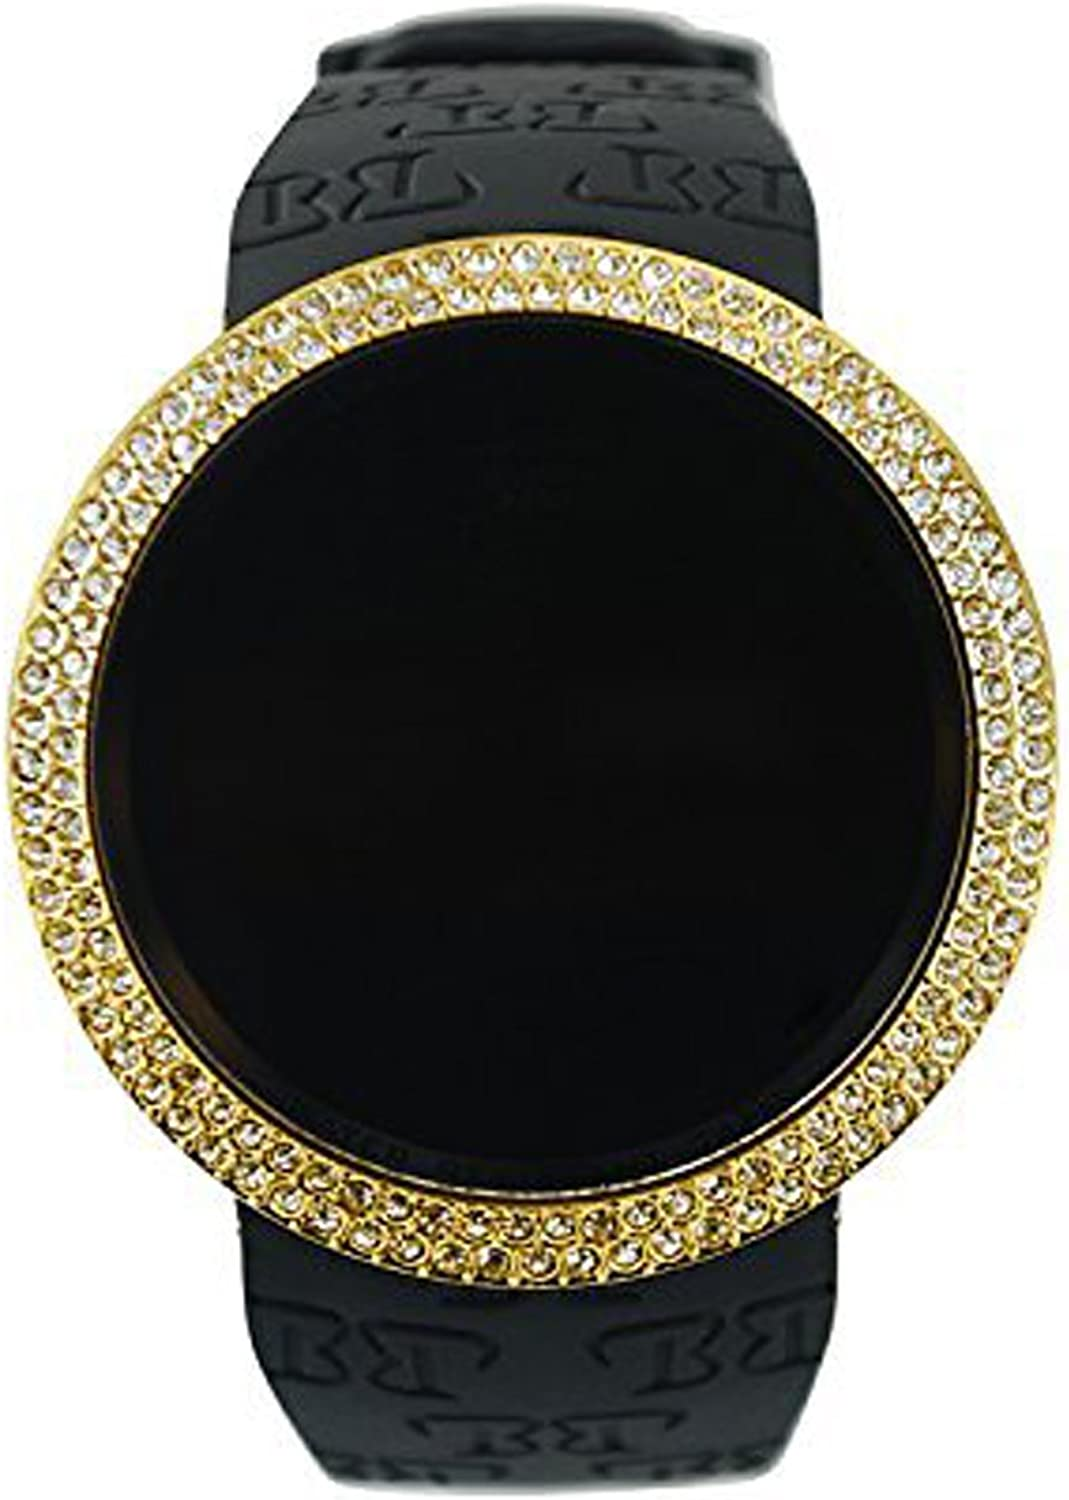 Techno Pave Iced Out Bling Lab Diamond Gold Black Digital Touch Screen Sports Smart Watch Silicone Band